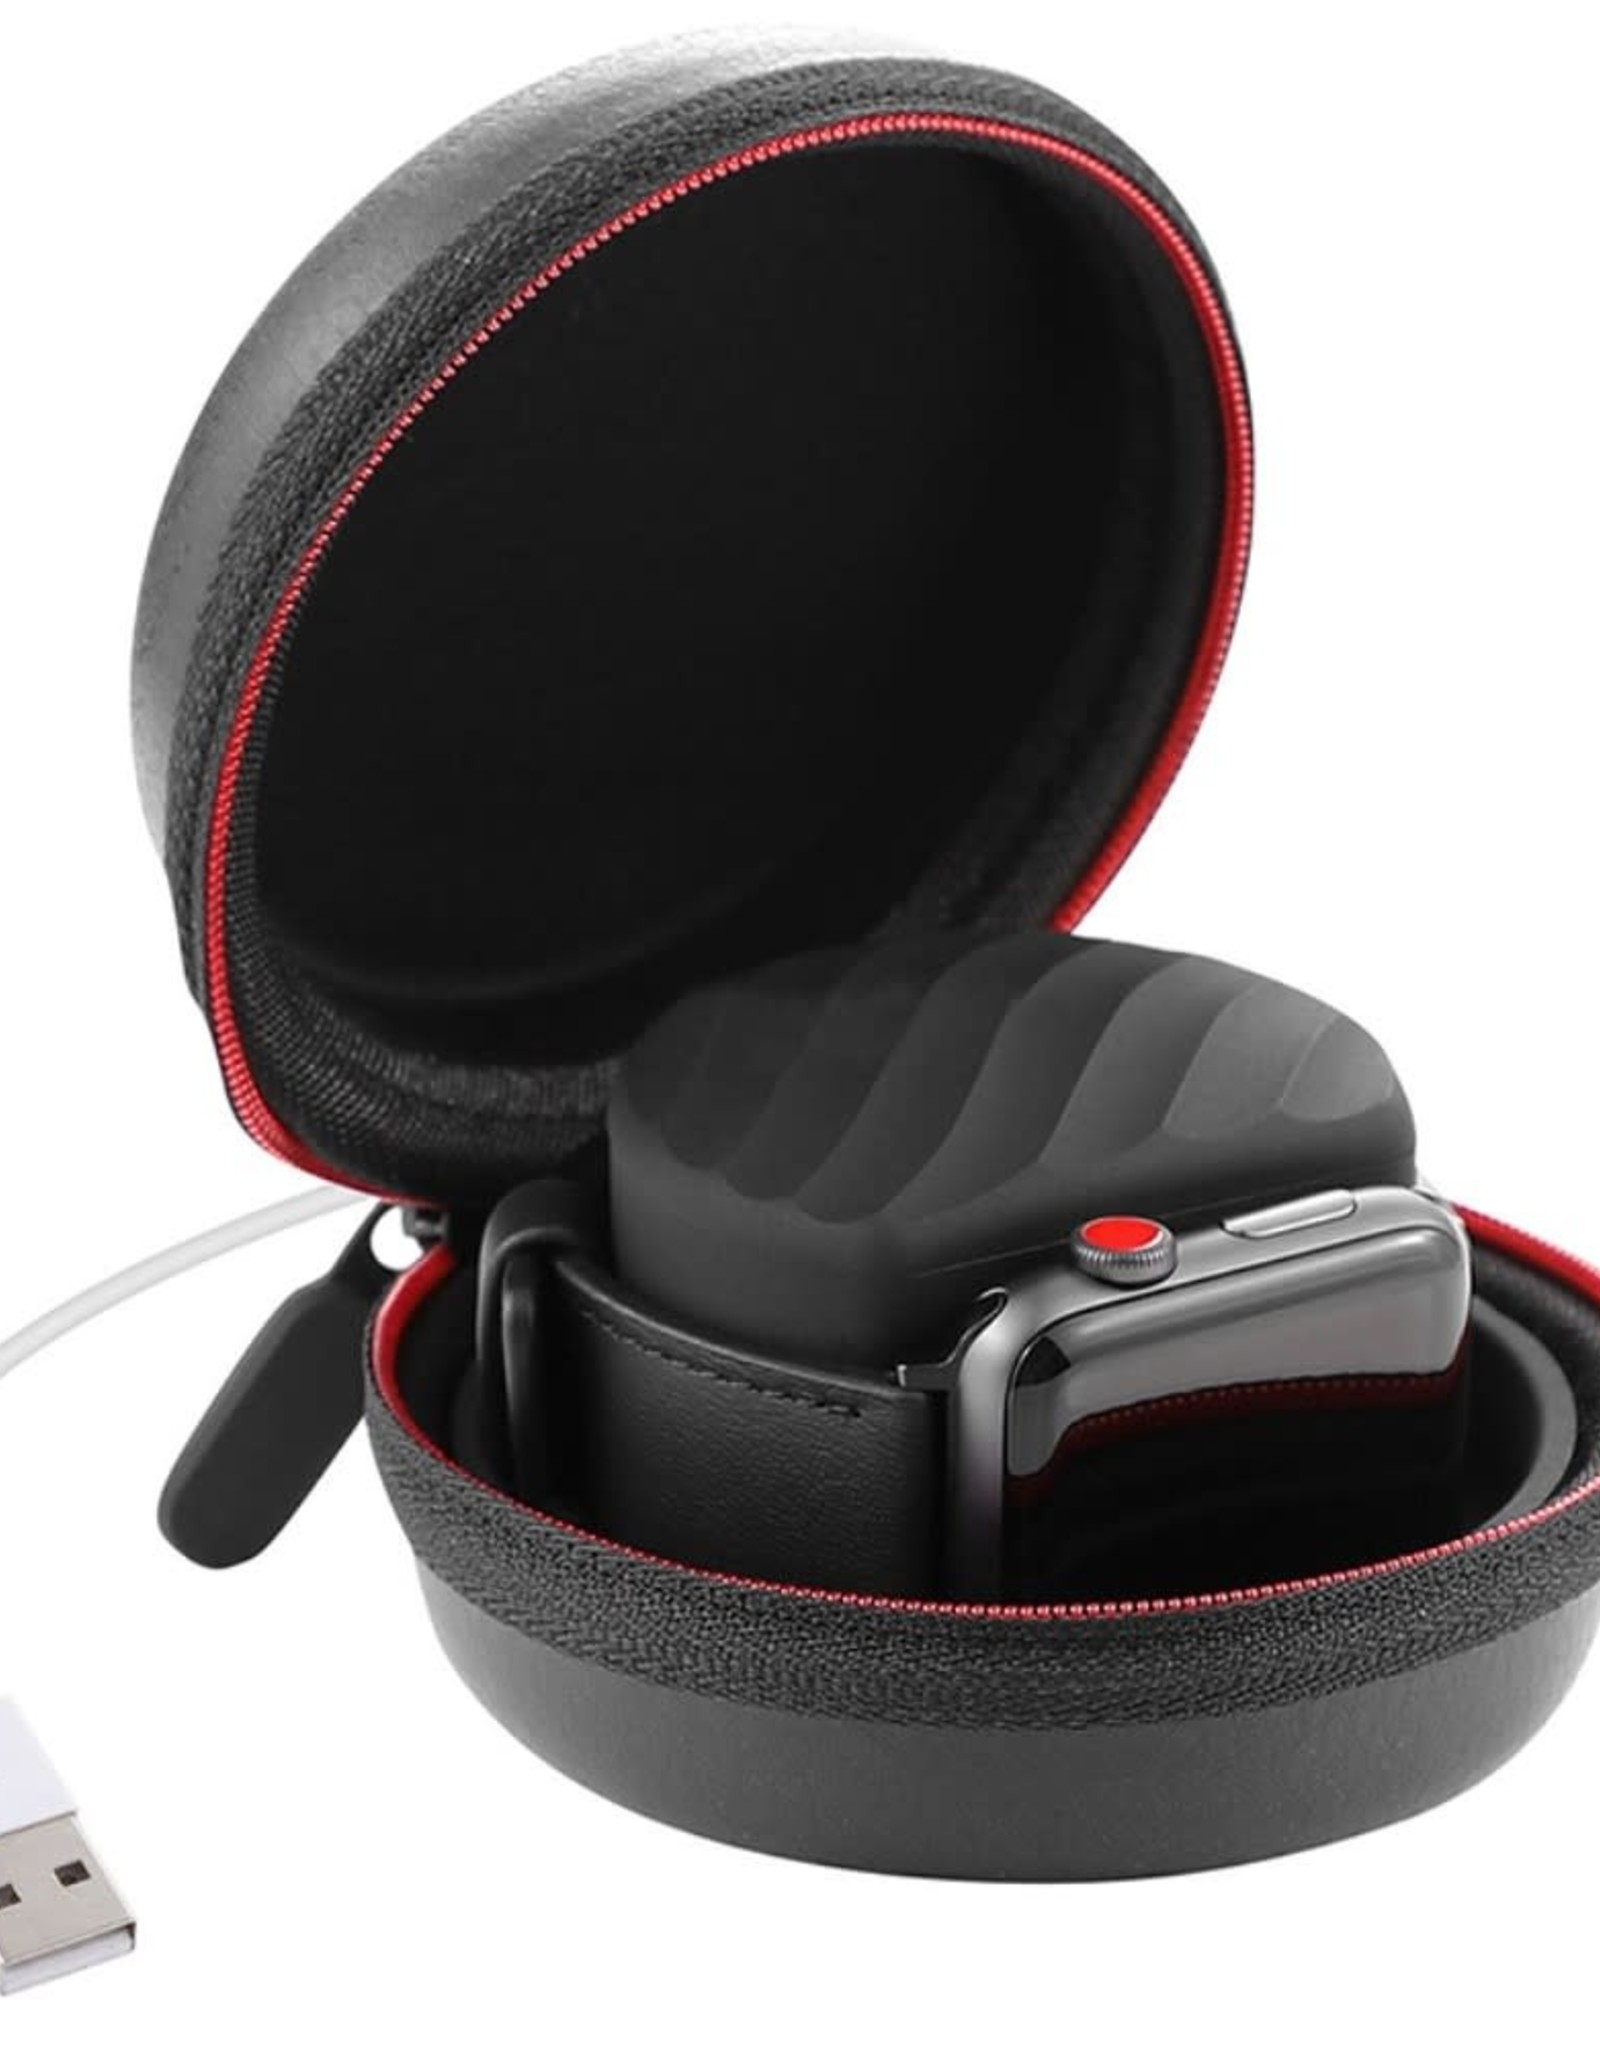 EVA Storage Bag Carry Case for Apple Watch Series 4/3/2/1 44mm/42mm/40mm/38mm with Charge Holder Dock and Carabiner